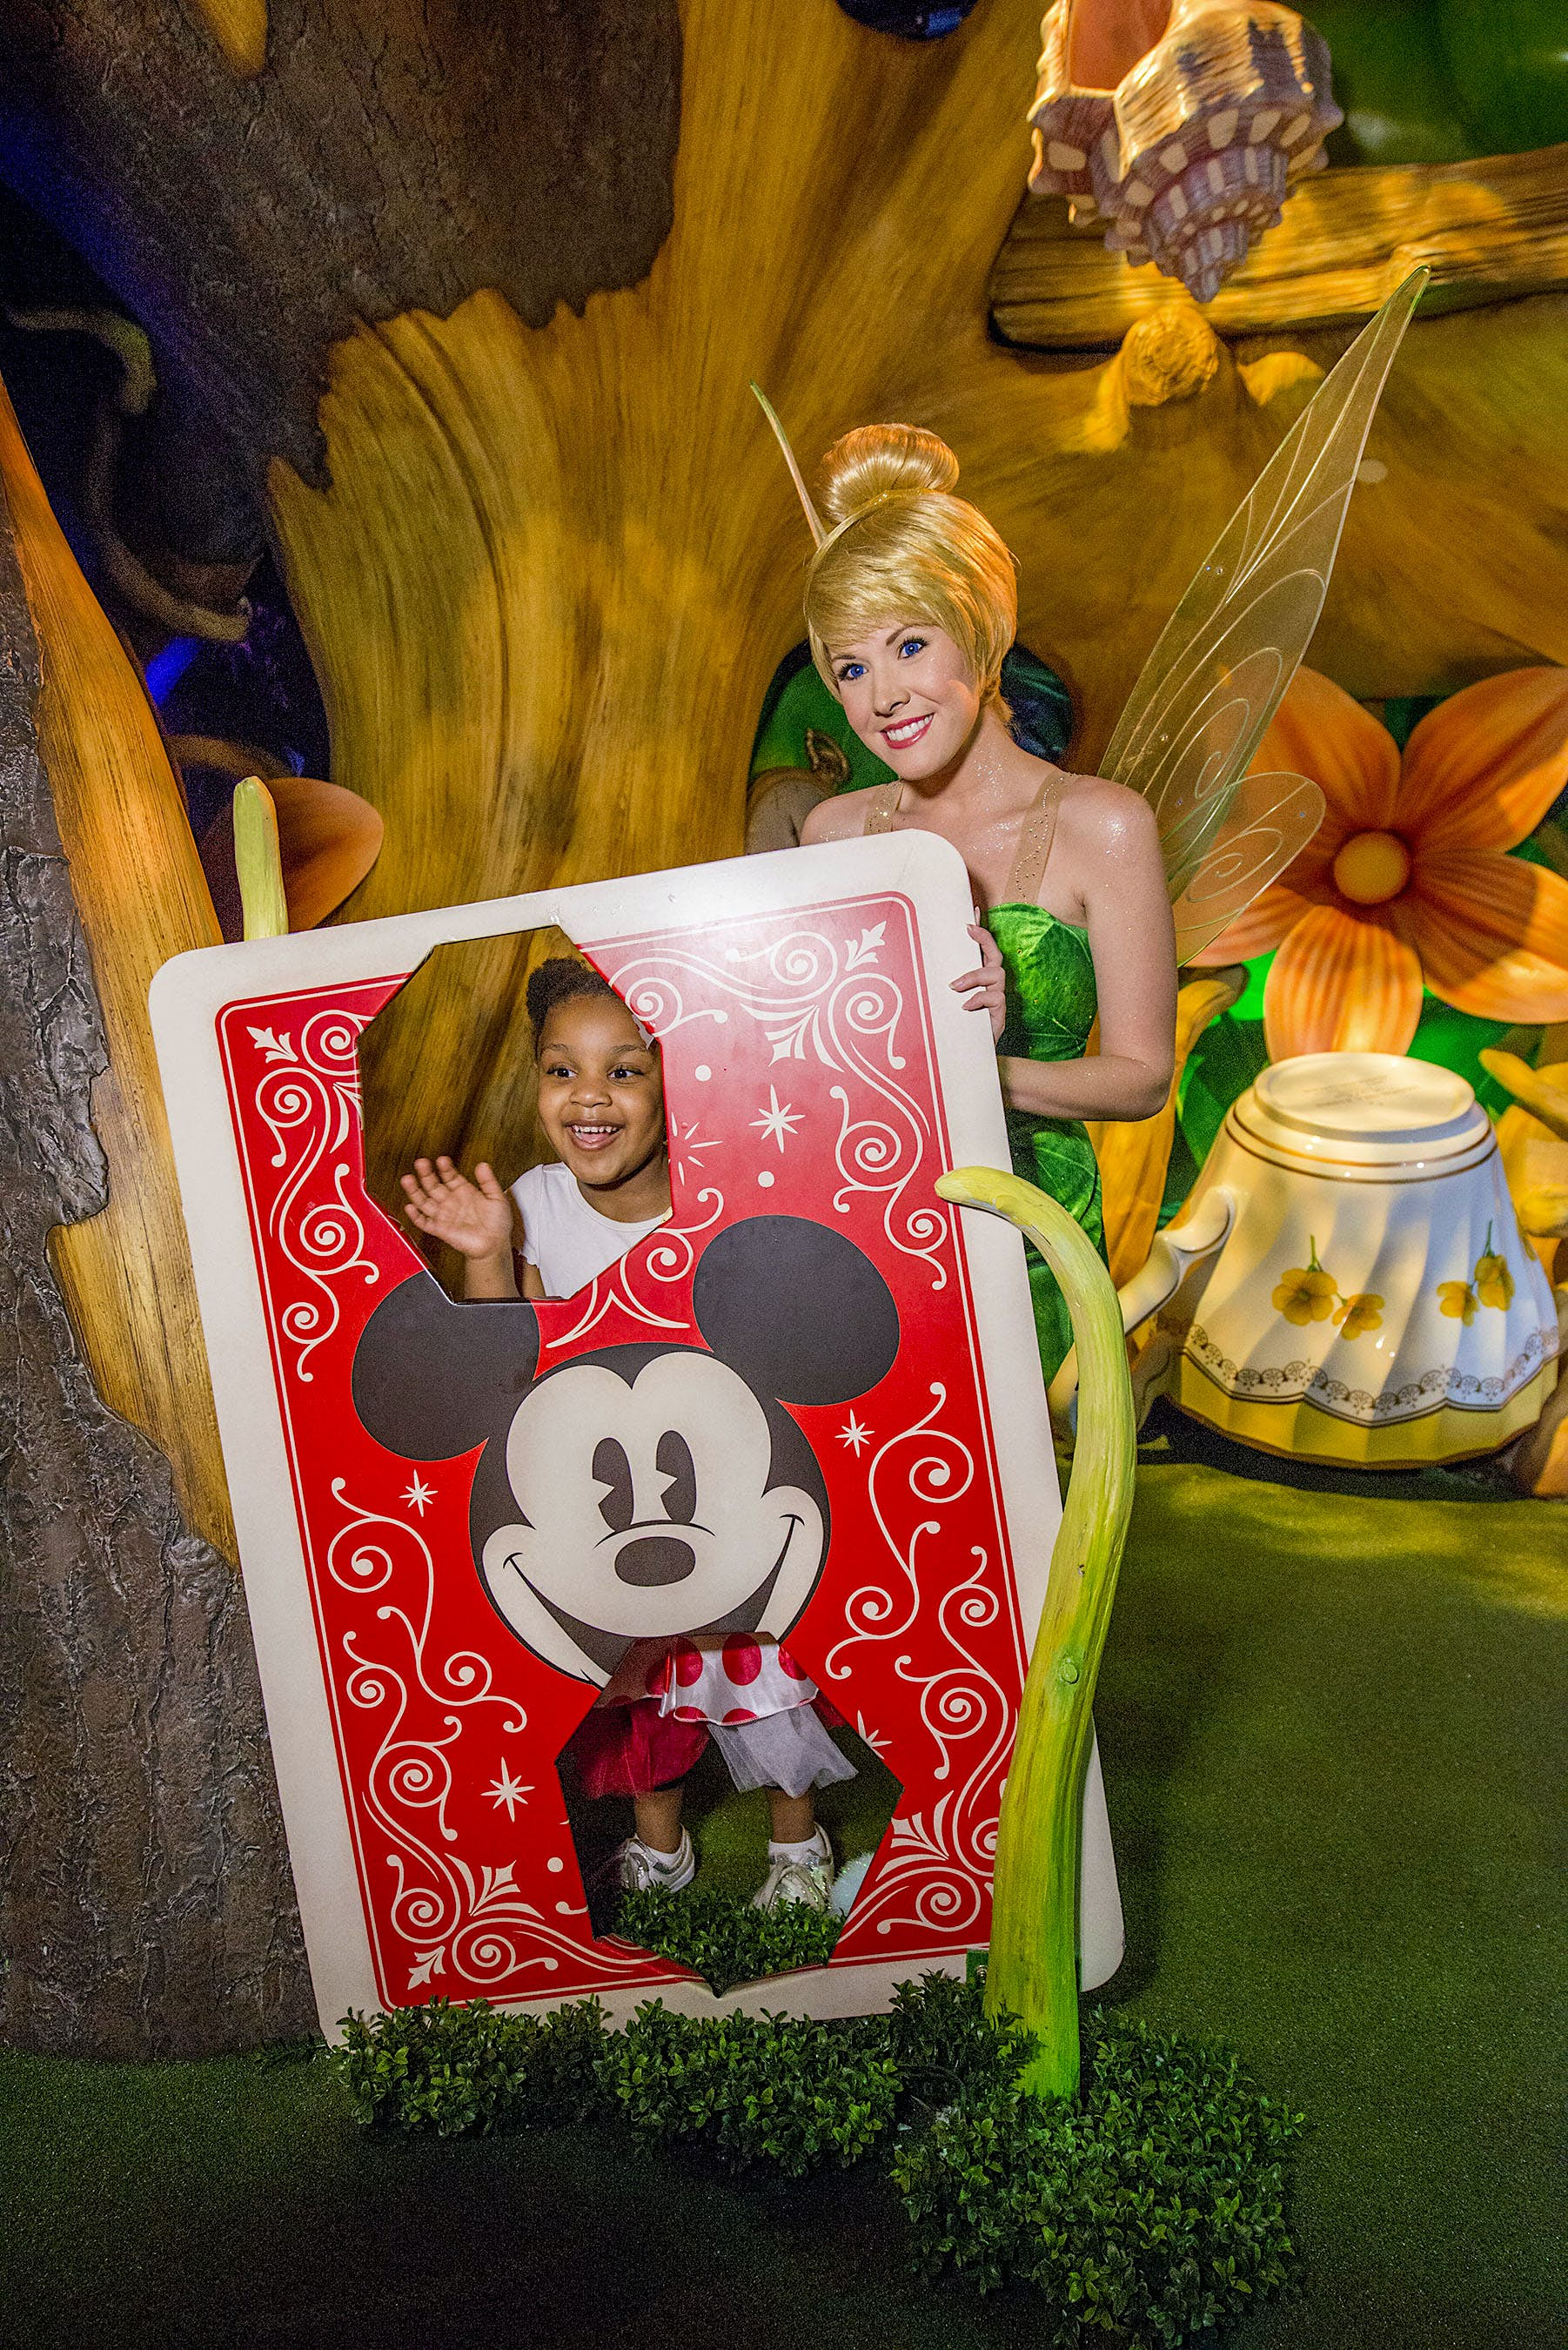 Tinker Bell strikes a pose with a young girl behind a large Mickey Mouse playing card